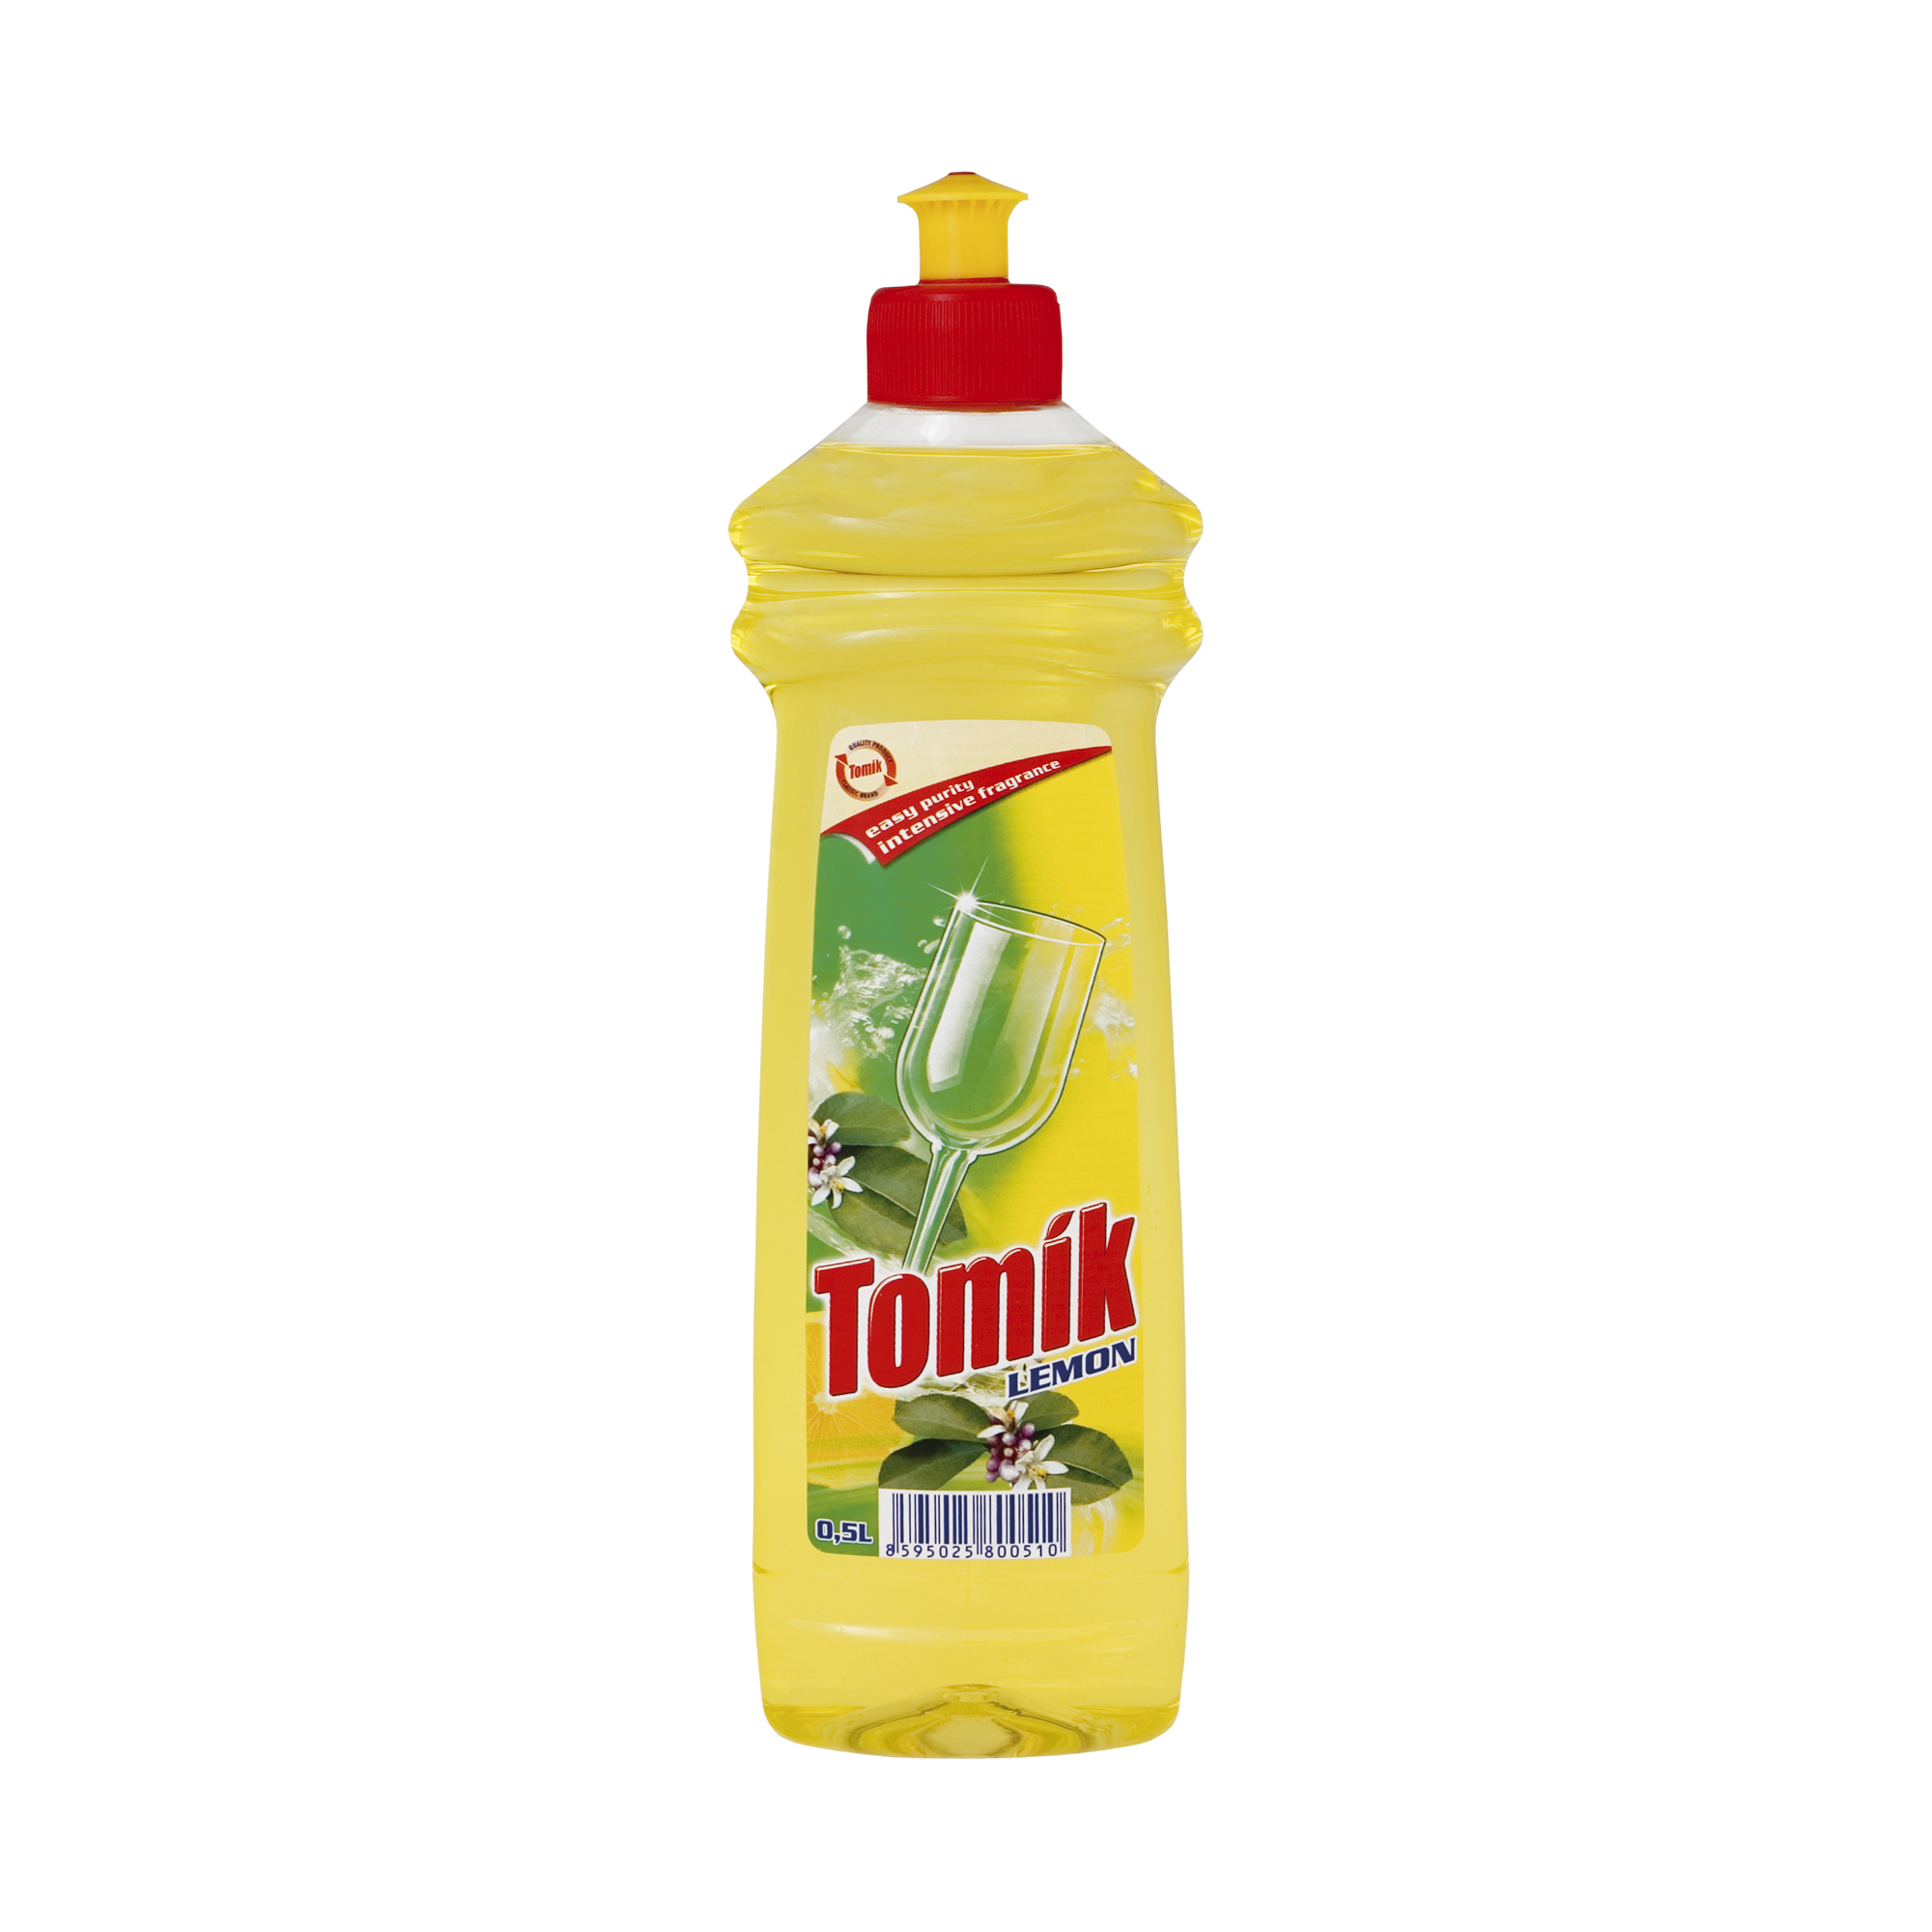 Tomík Lemon washing up liquid